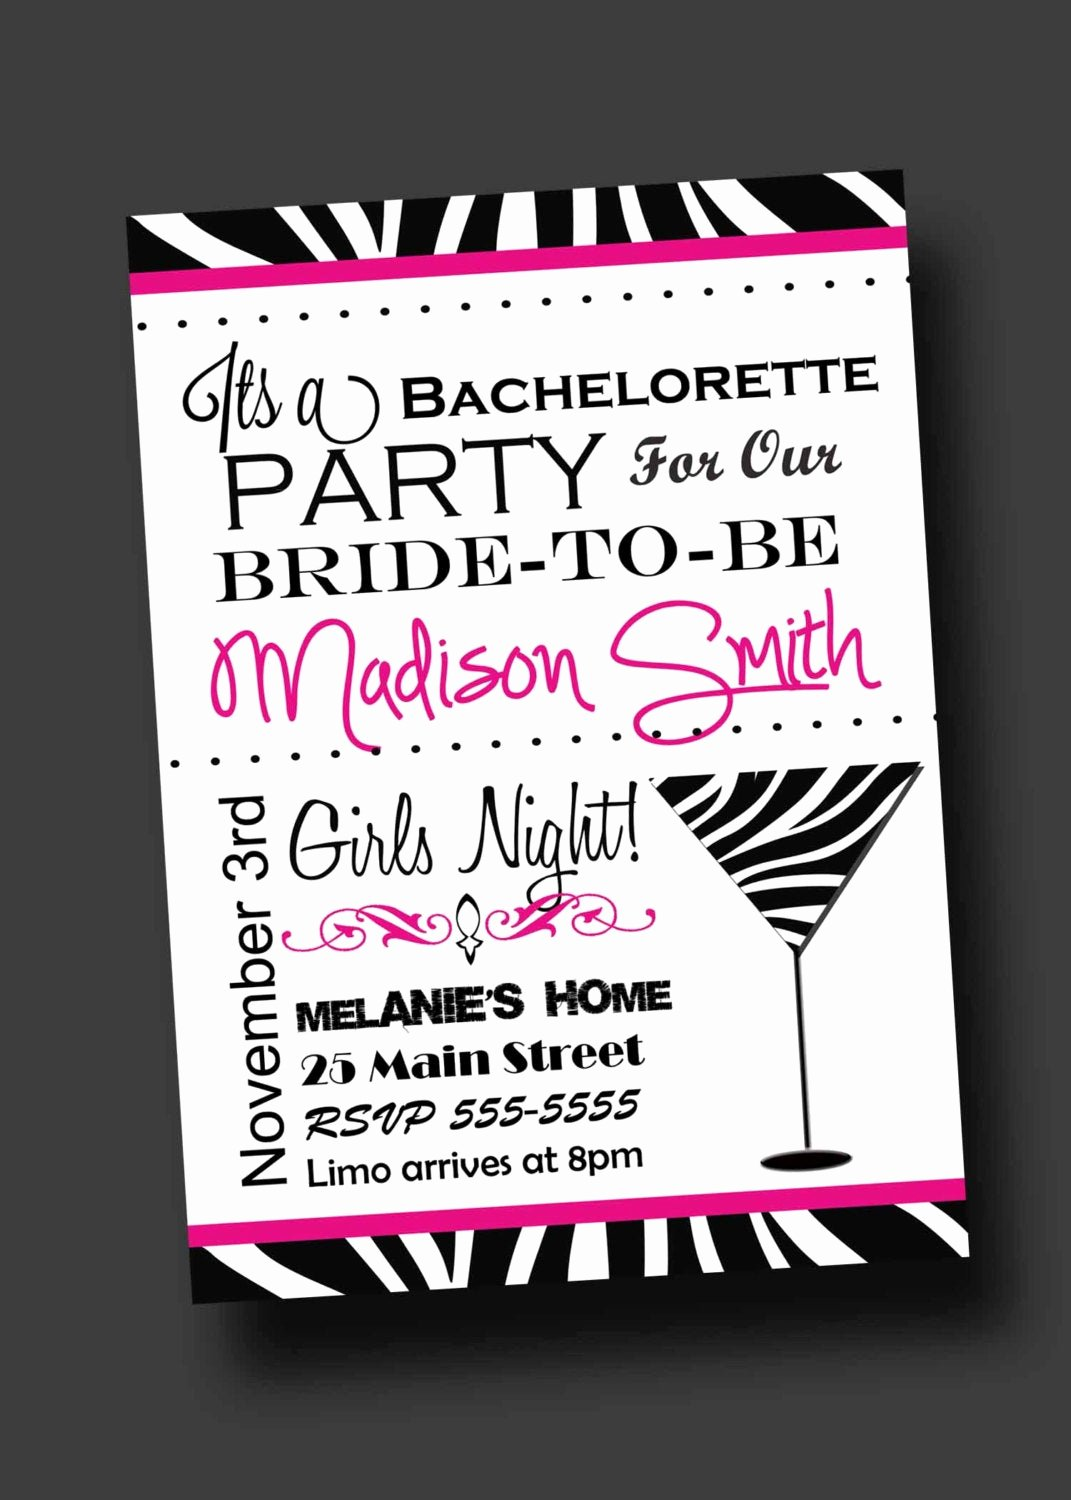 Bachelor Party Invites Template Fresh Bachelorette Party Invitation Zebra Print Printable Digital